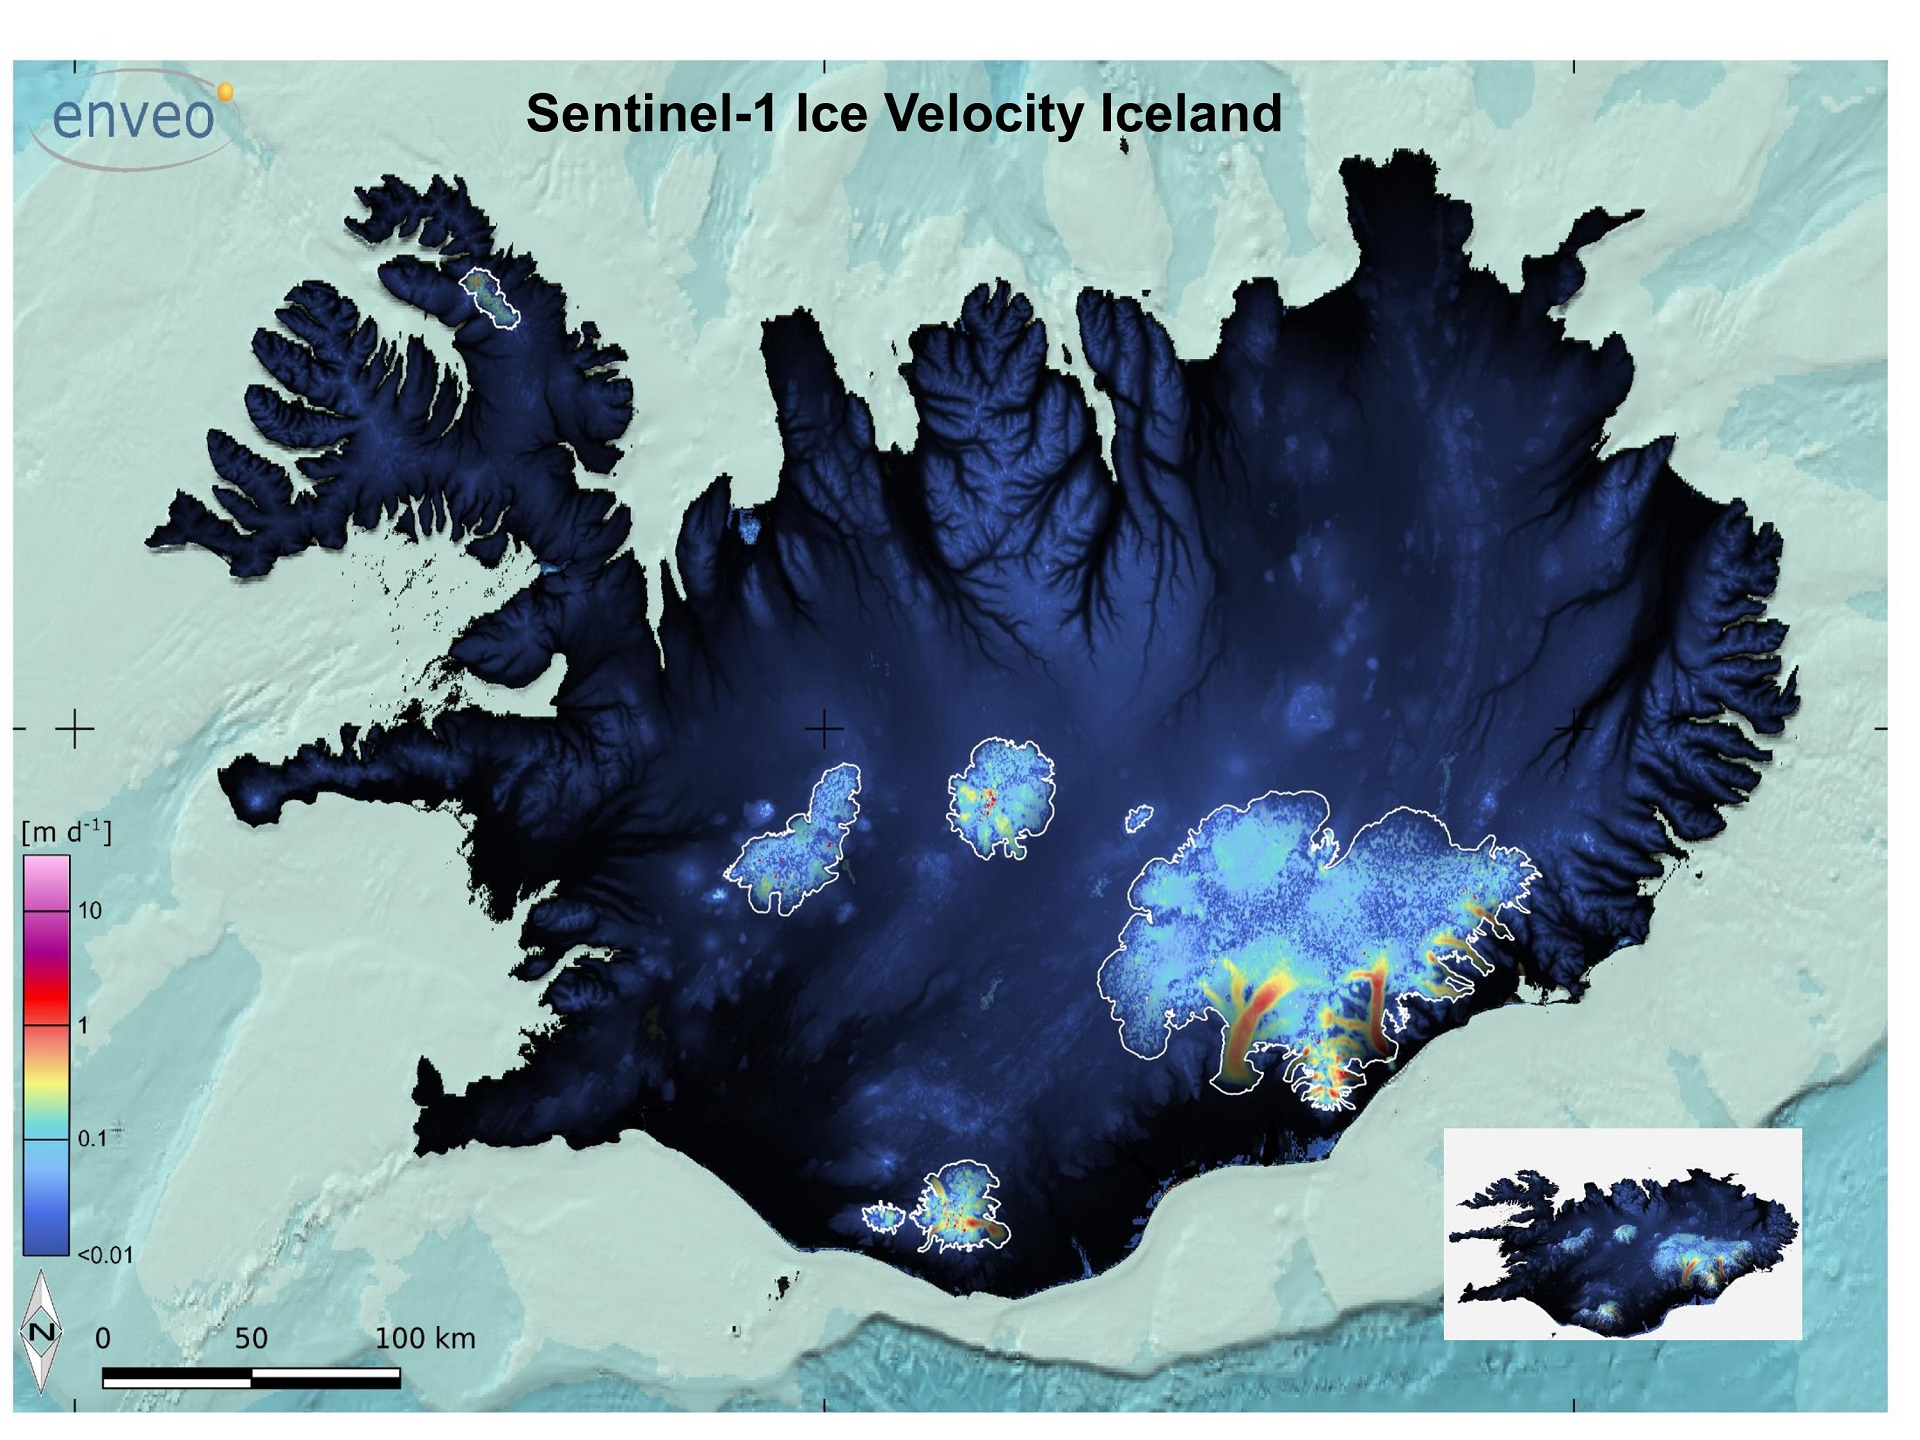 Two velocity maps of Skeiðarárjökull derived from satellite images, showing the variation in glacier surface velocity. The horizontal velocity field of the outlet glacier at the end of December (a) and during the beginning of the 1996 jökulhlaup (b). The blue line shows the estimated flood path. Source: Magnússon et al. (2007).